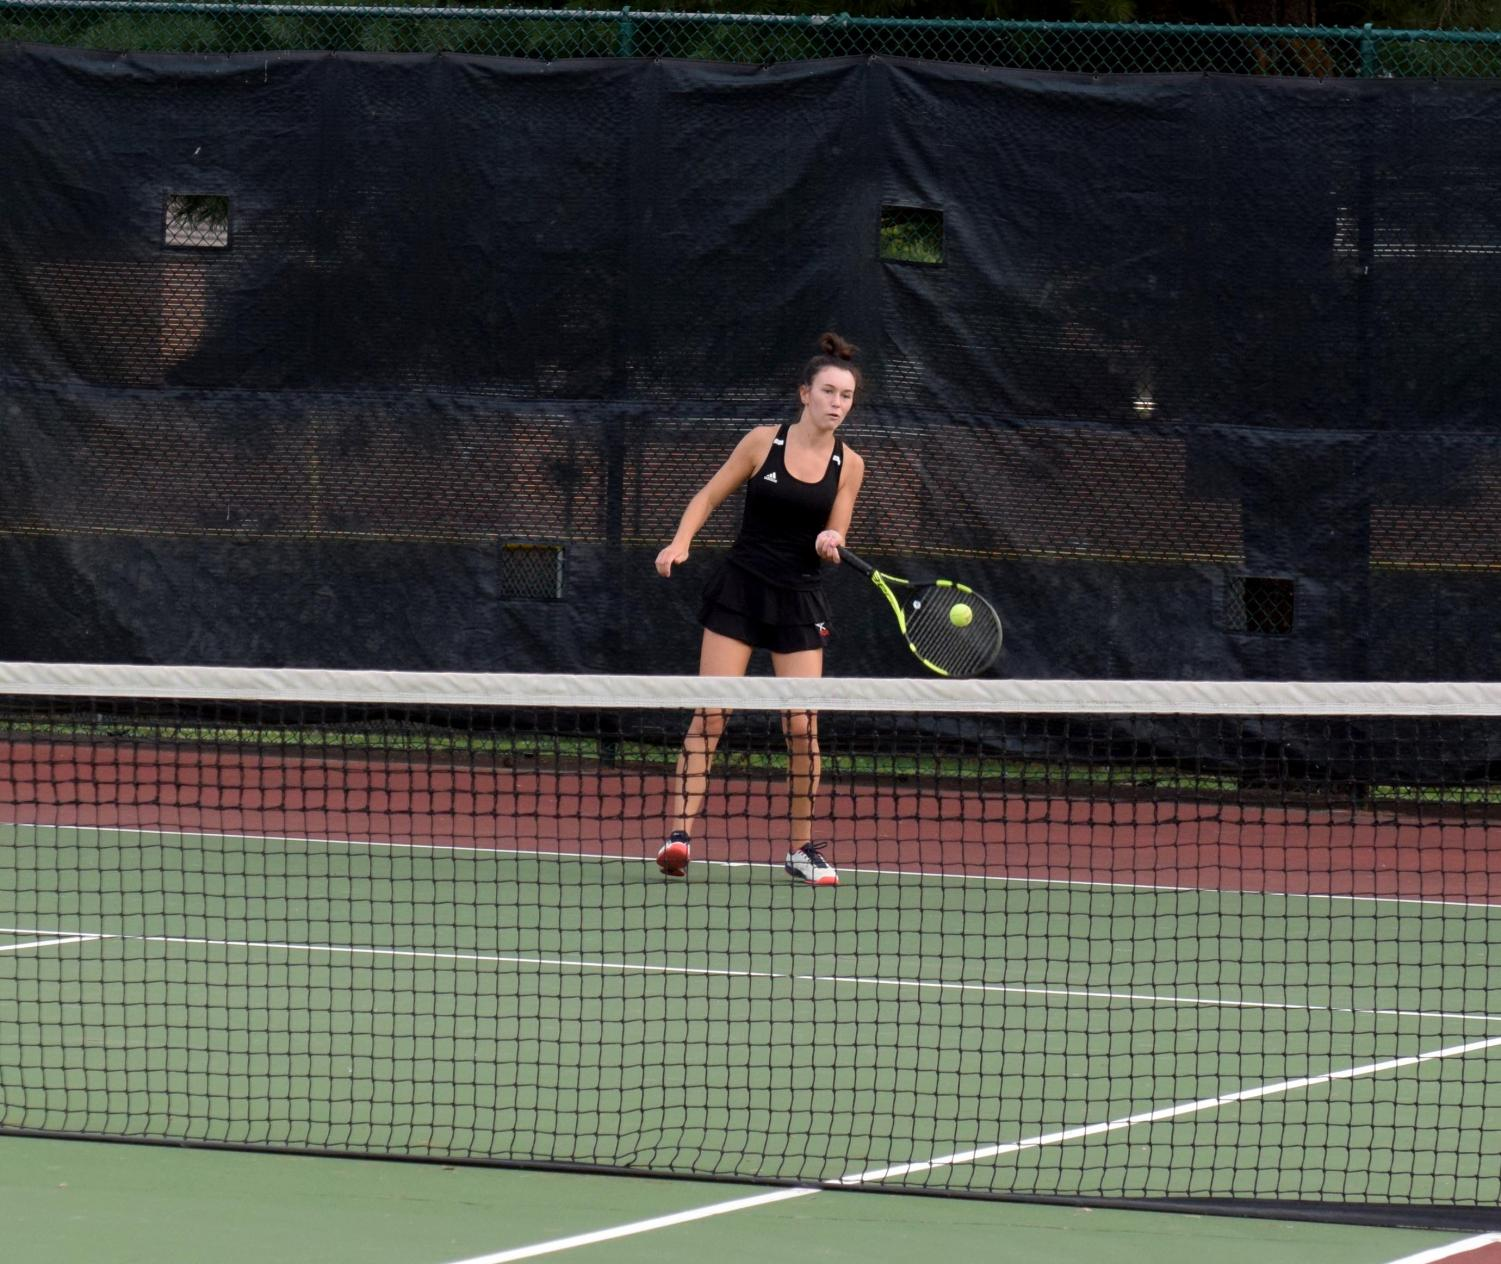 Junior Maggie Huff returning a ball to the other team at the match against Lafayette on Sept. 15. The team won this match.